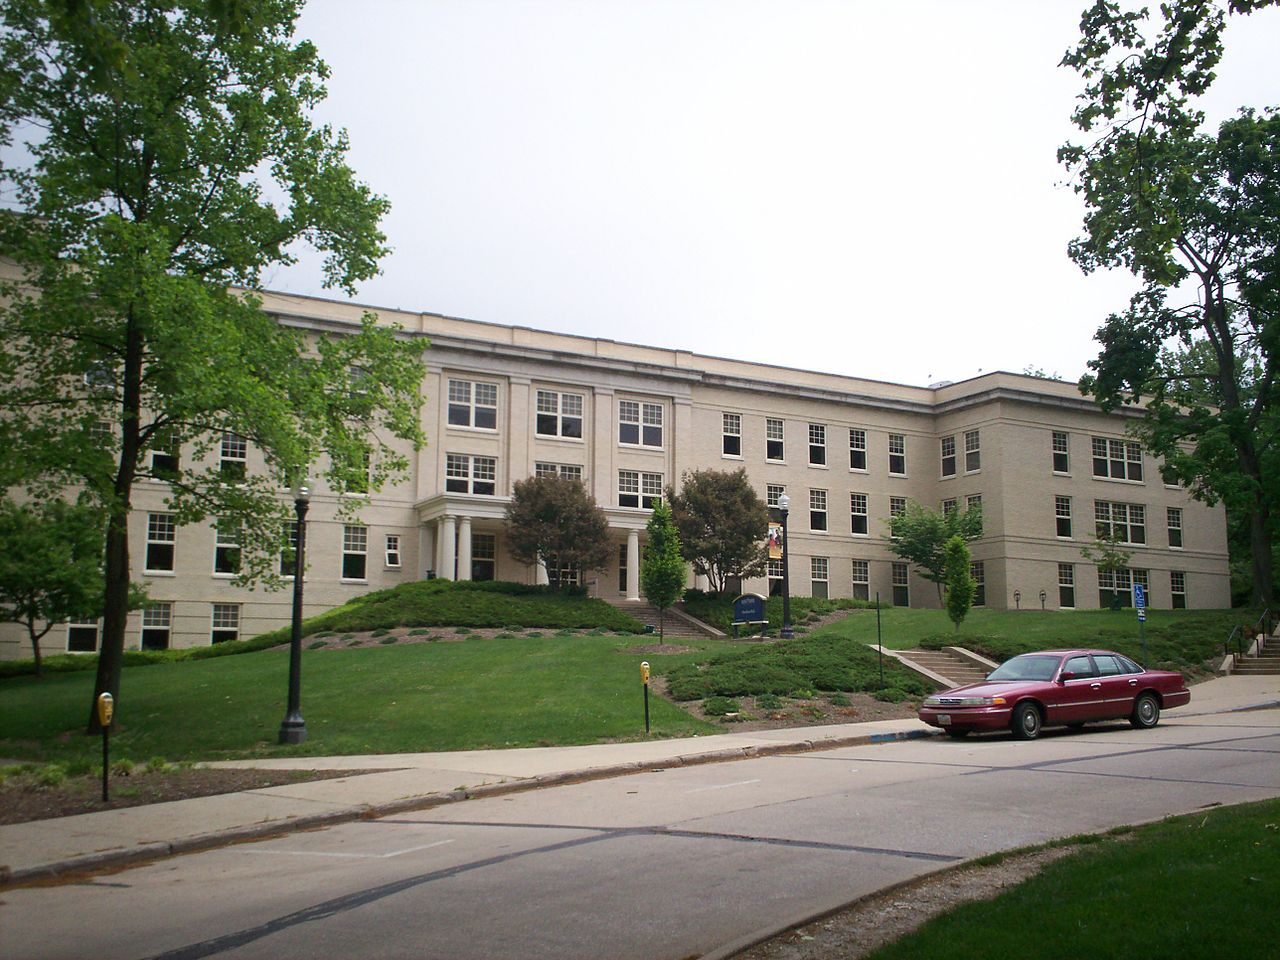 Moulton Hall today